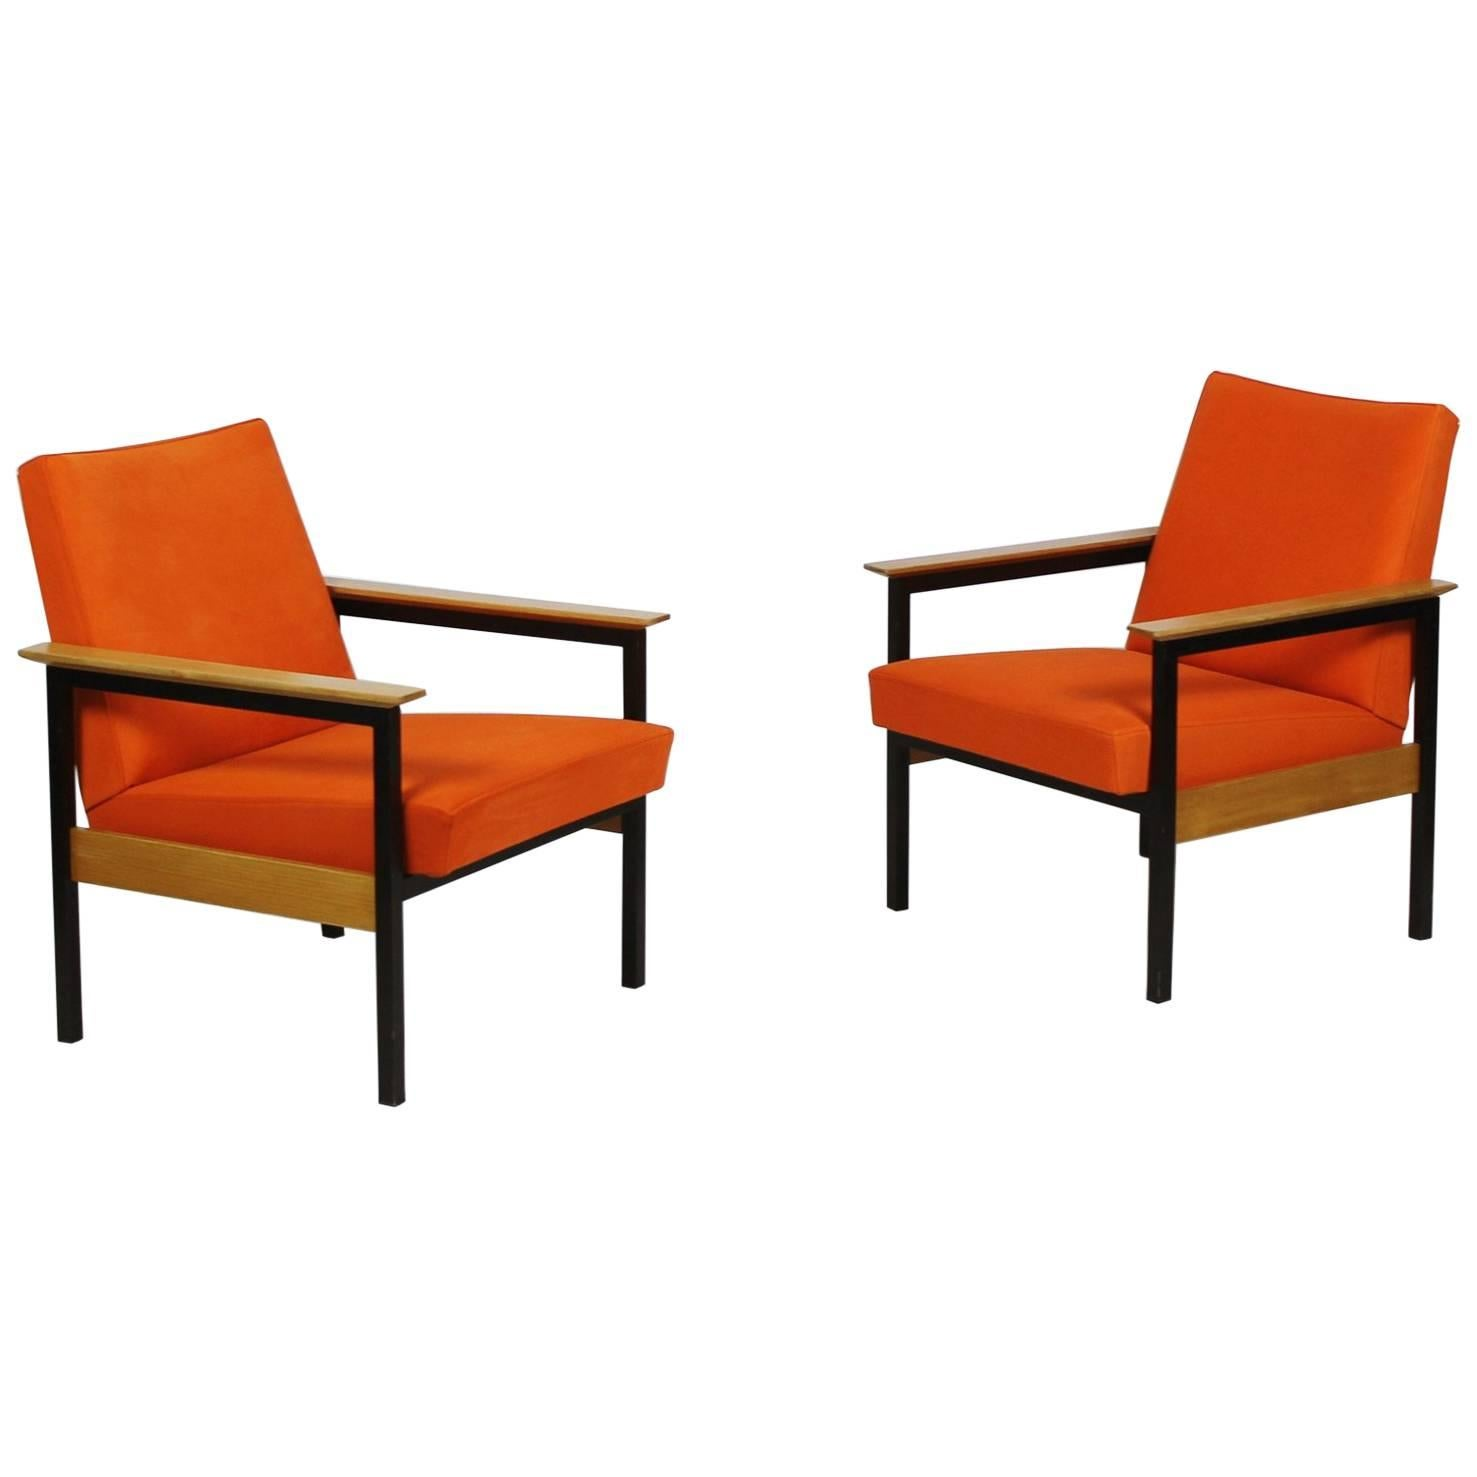 leather armchair metal frame red chair covers wedding pair of framed armchairs with wooden armrests switzerland 1960s for sale